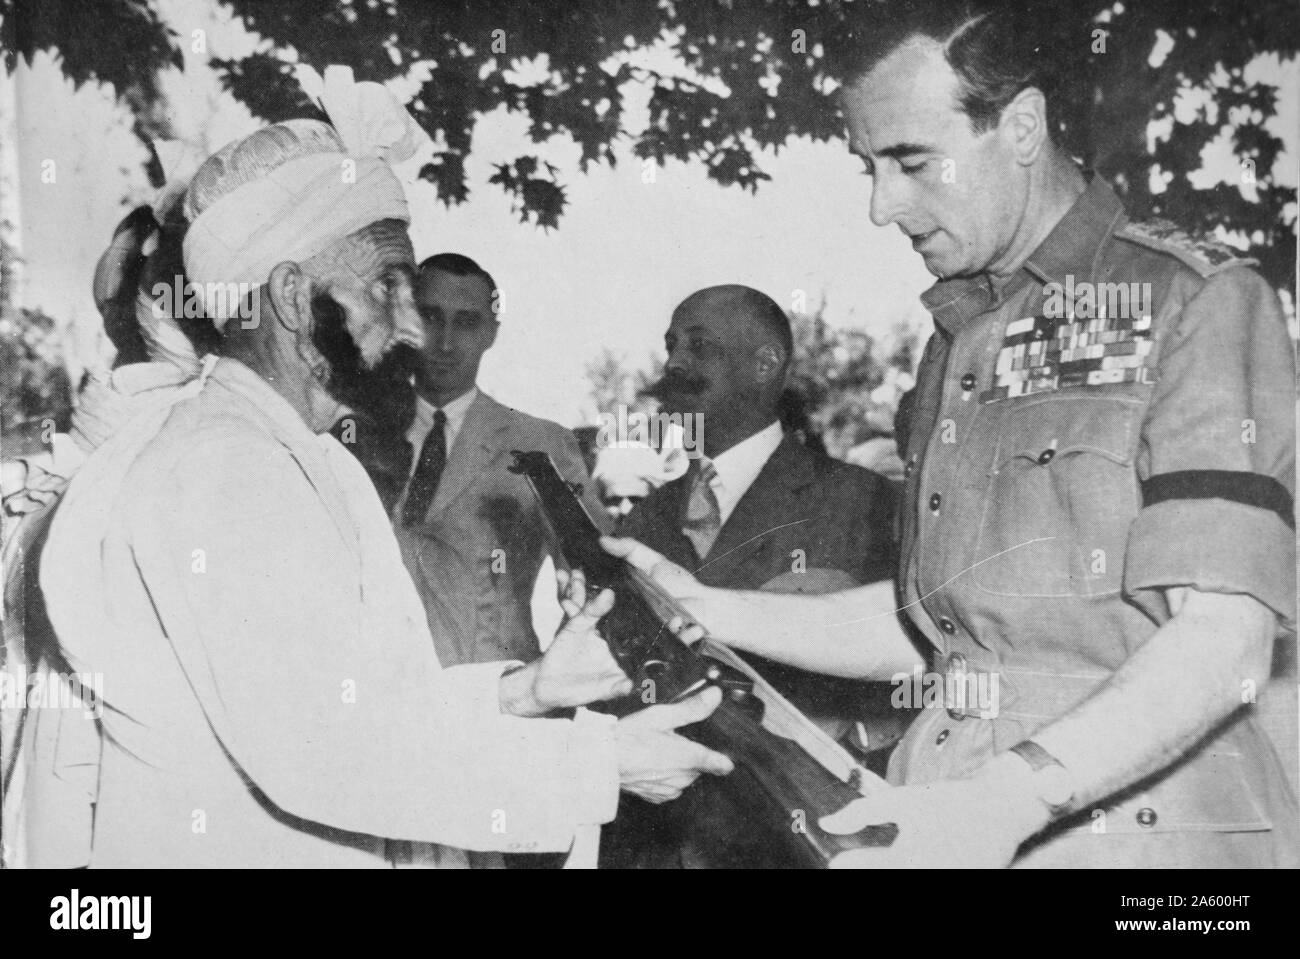 Lord Mountbatten India High Resolution Stock Photography And Images Alamy